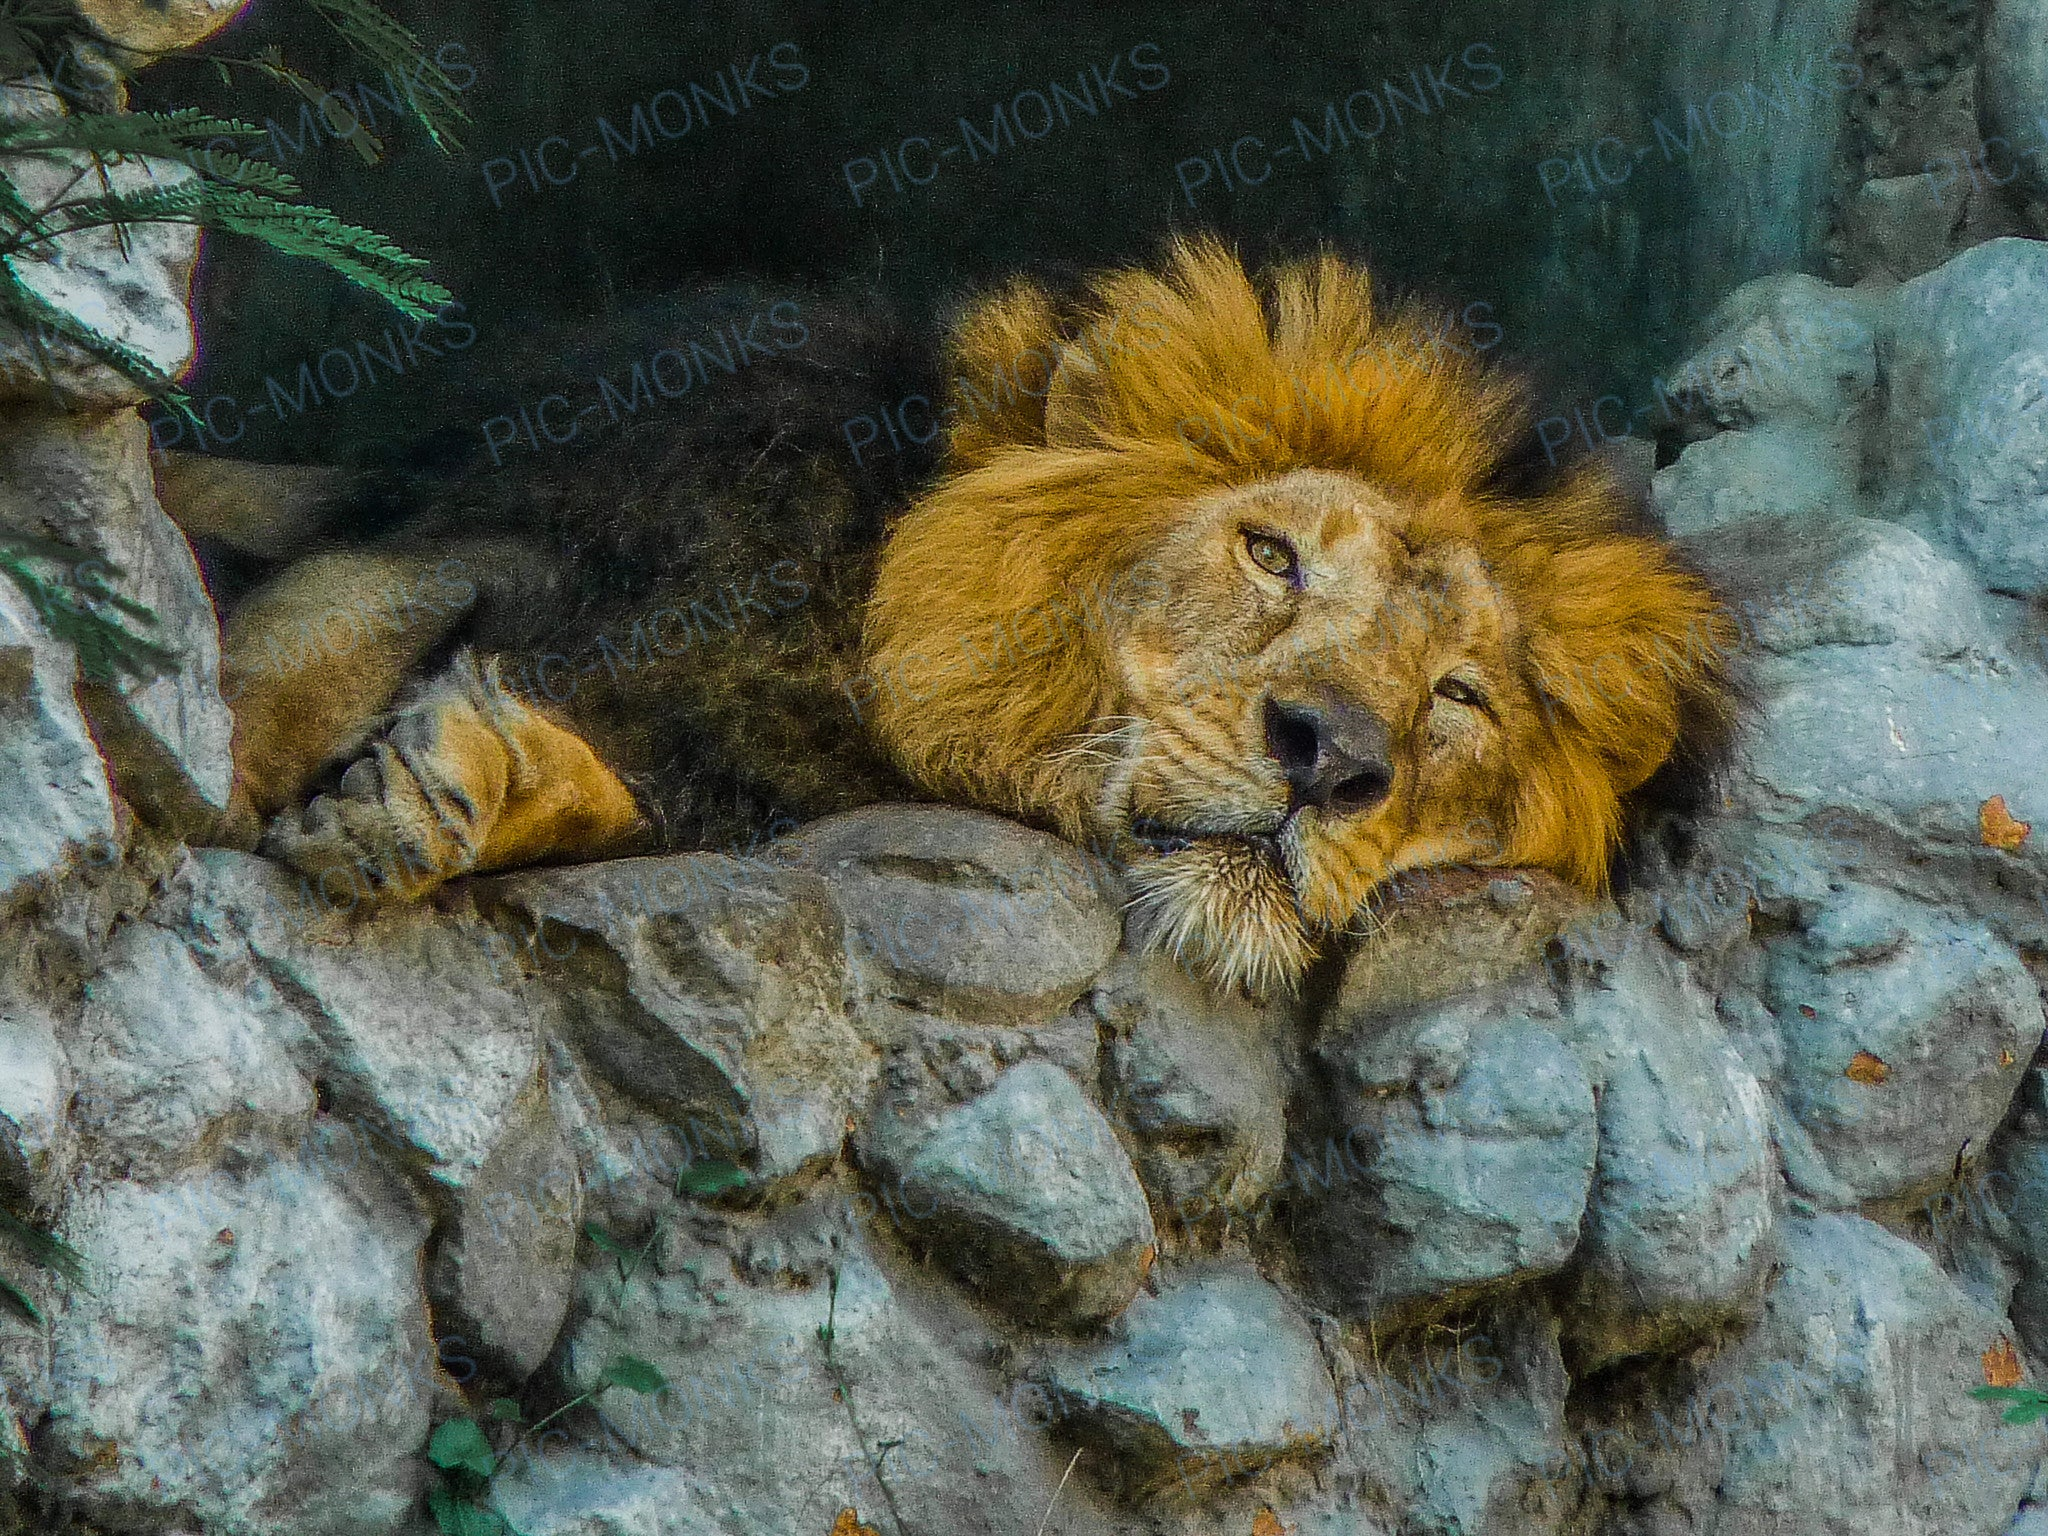 The King Rests